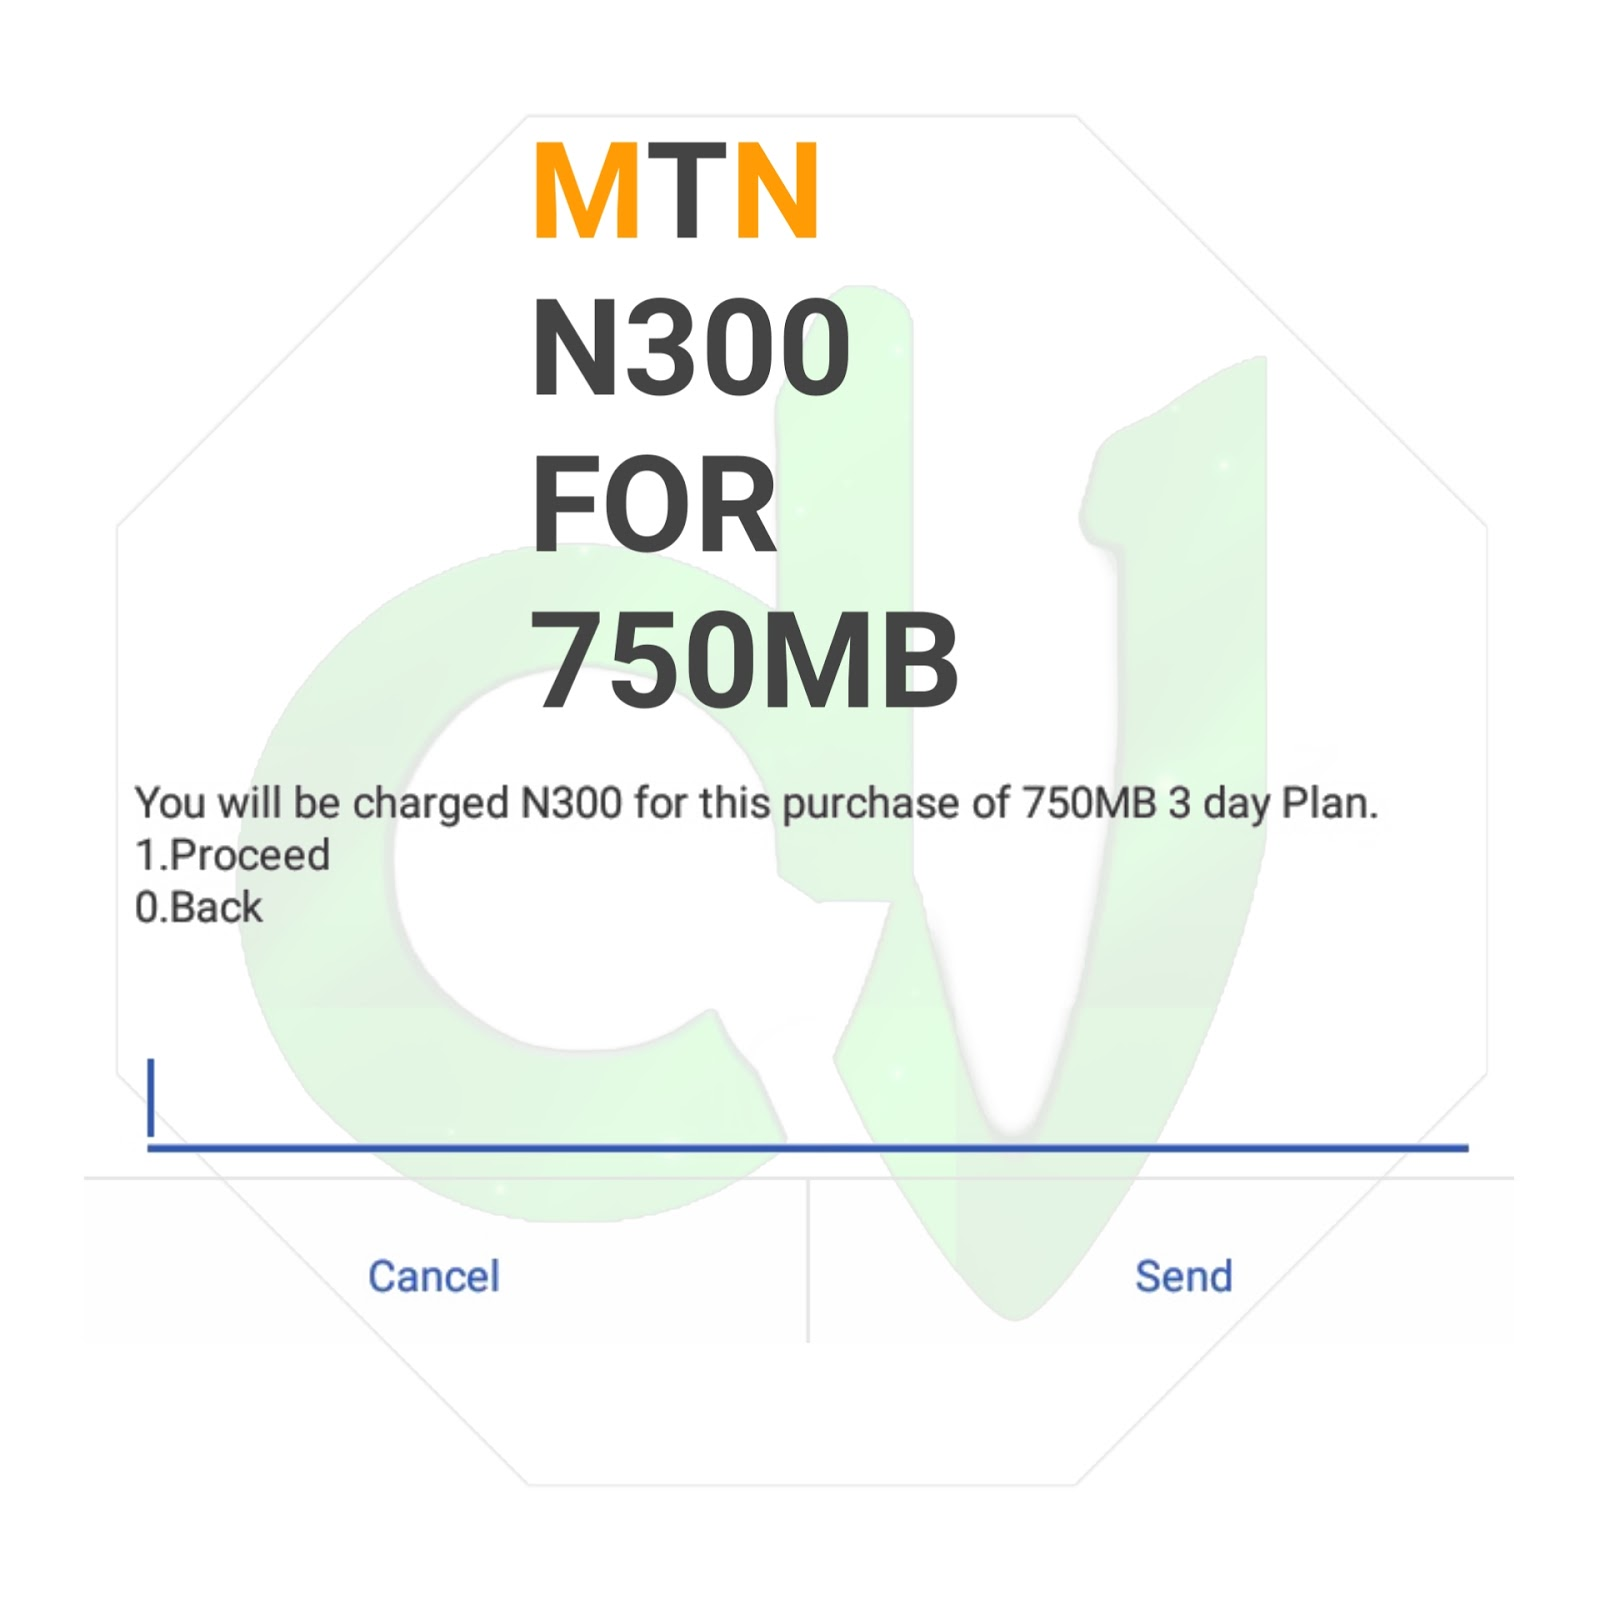 cheapest mtn data plan 2019: How to activate MTN 750mb for N300